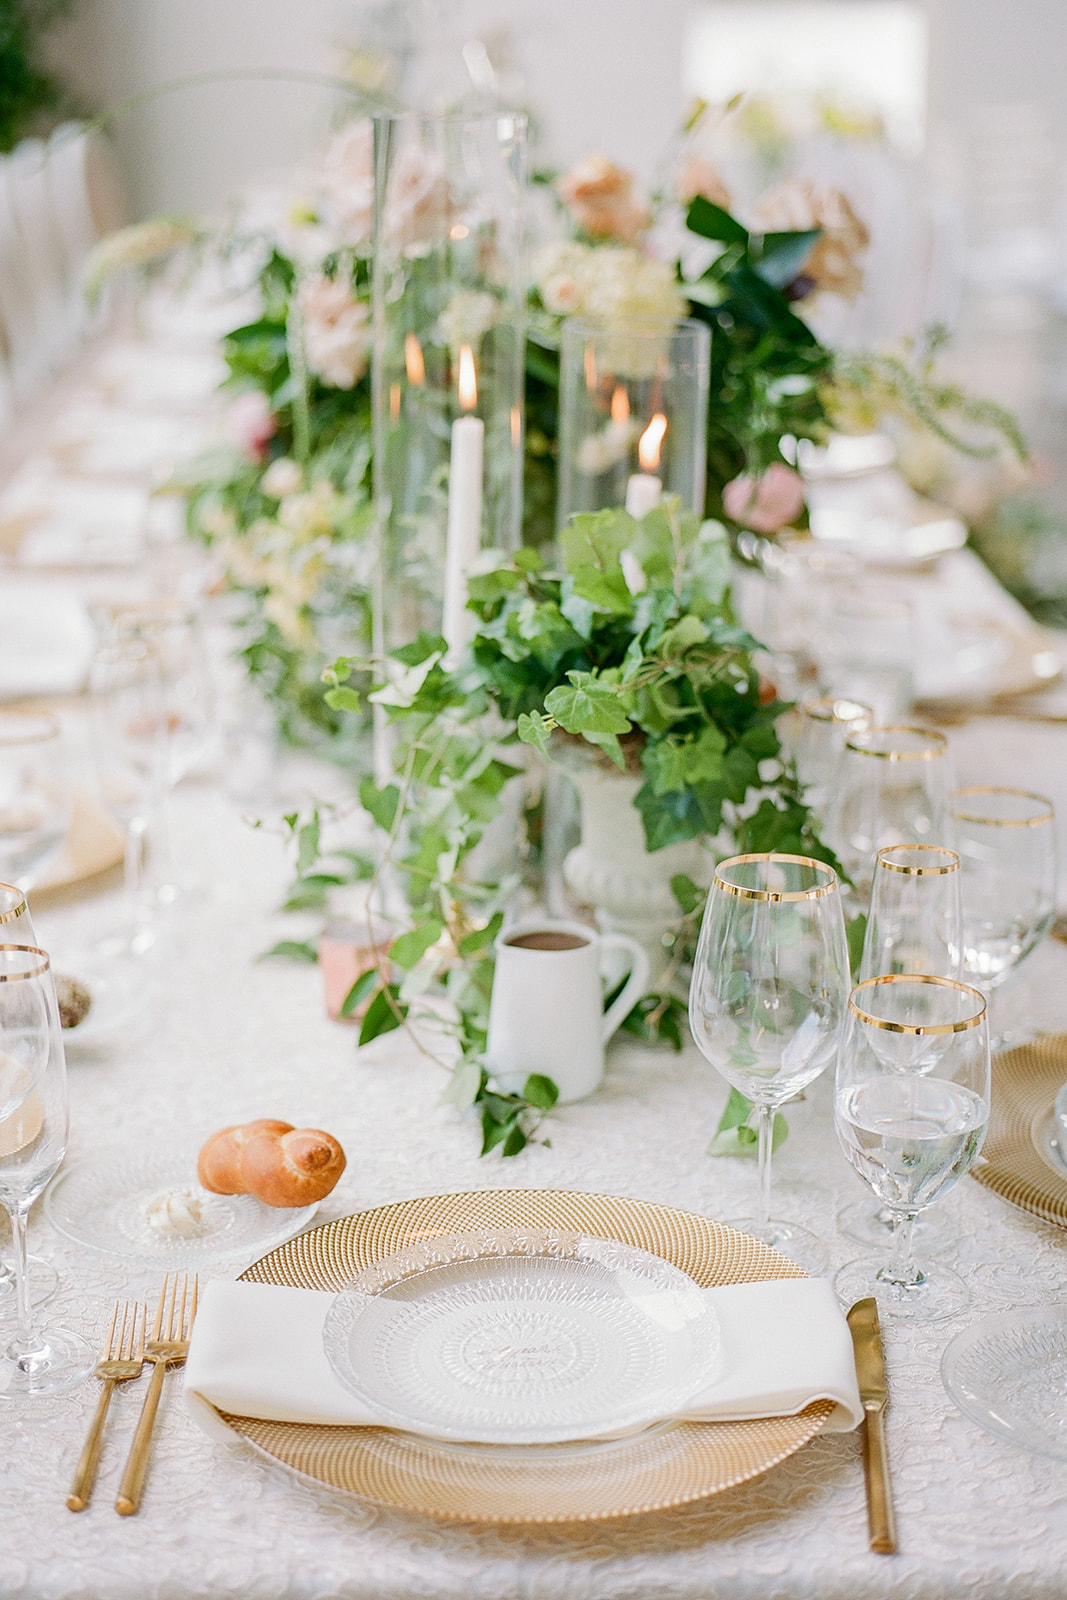 gold trimmed place settings with white linens